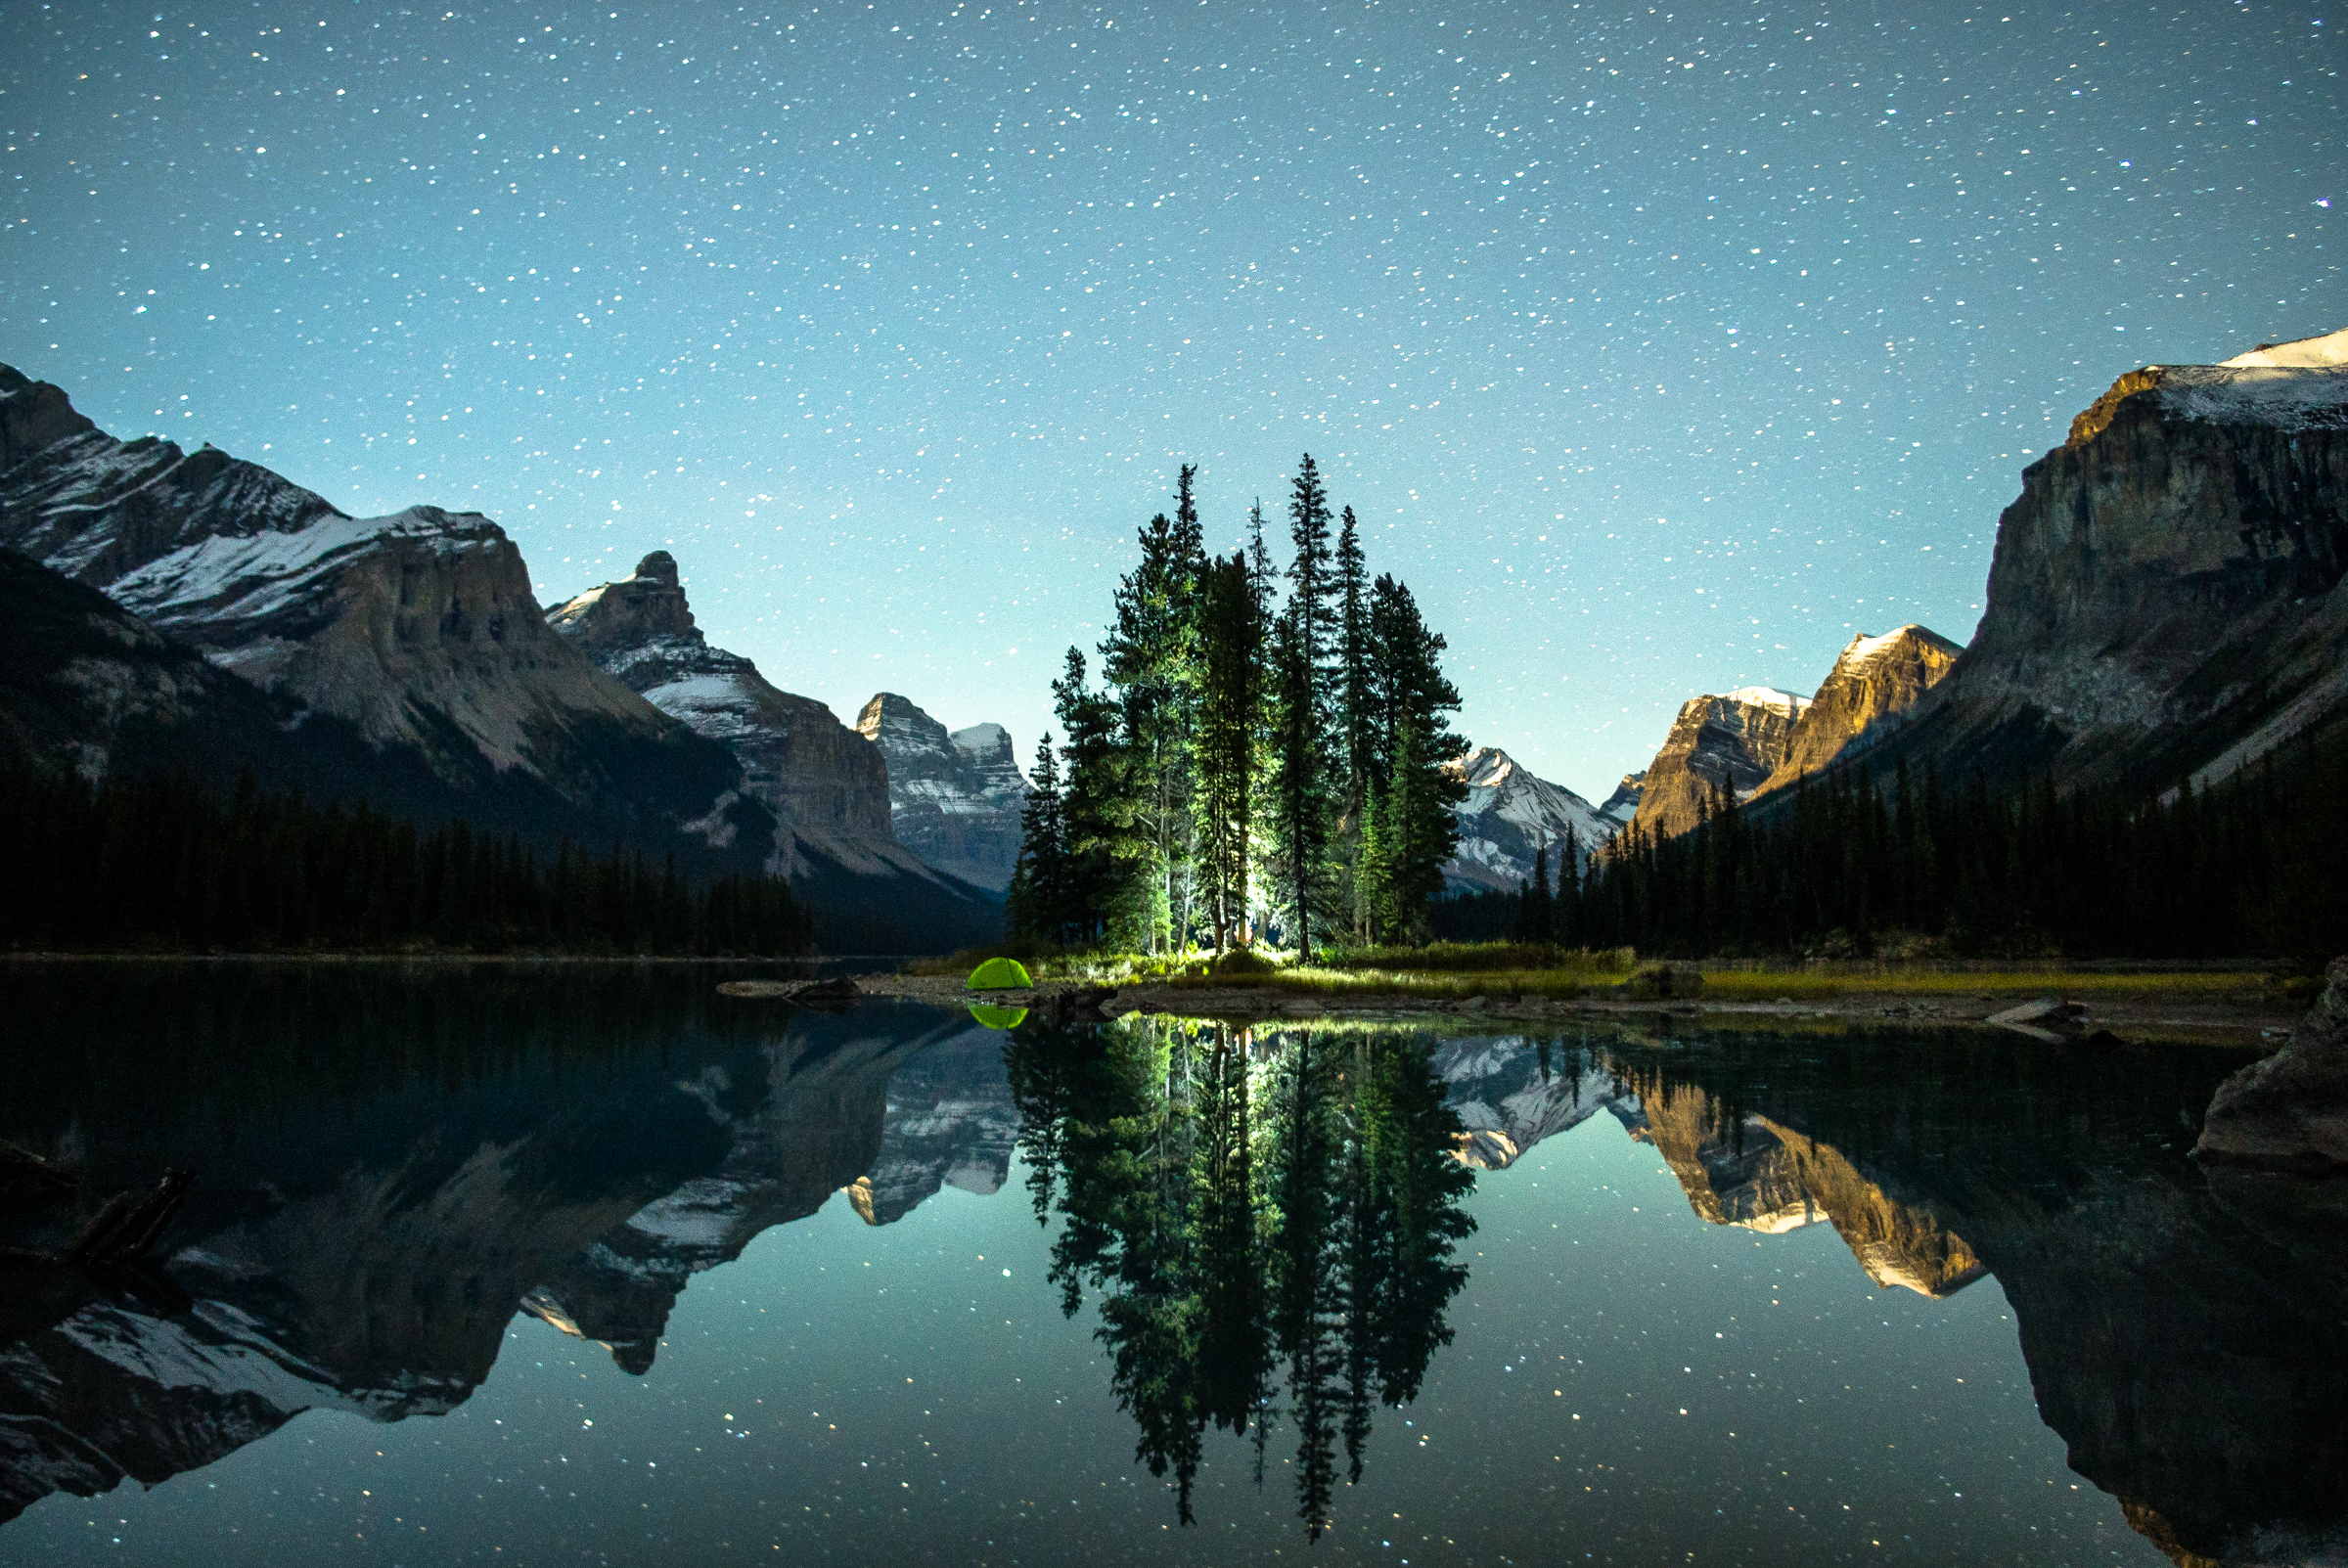 Instagram Wallpaper: Instagram For Business: 1 Million Followers With Chris Burkard